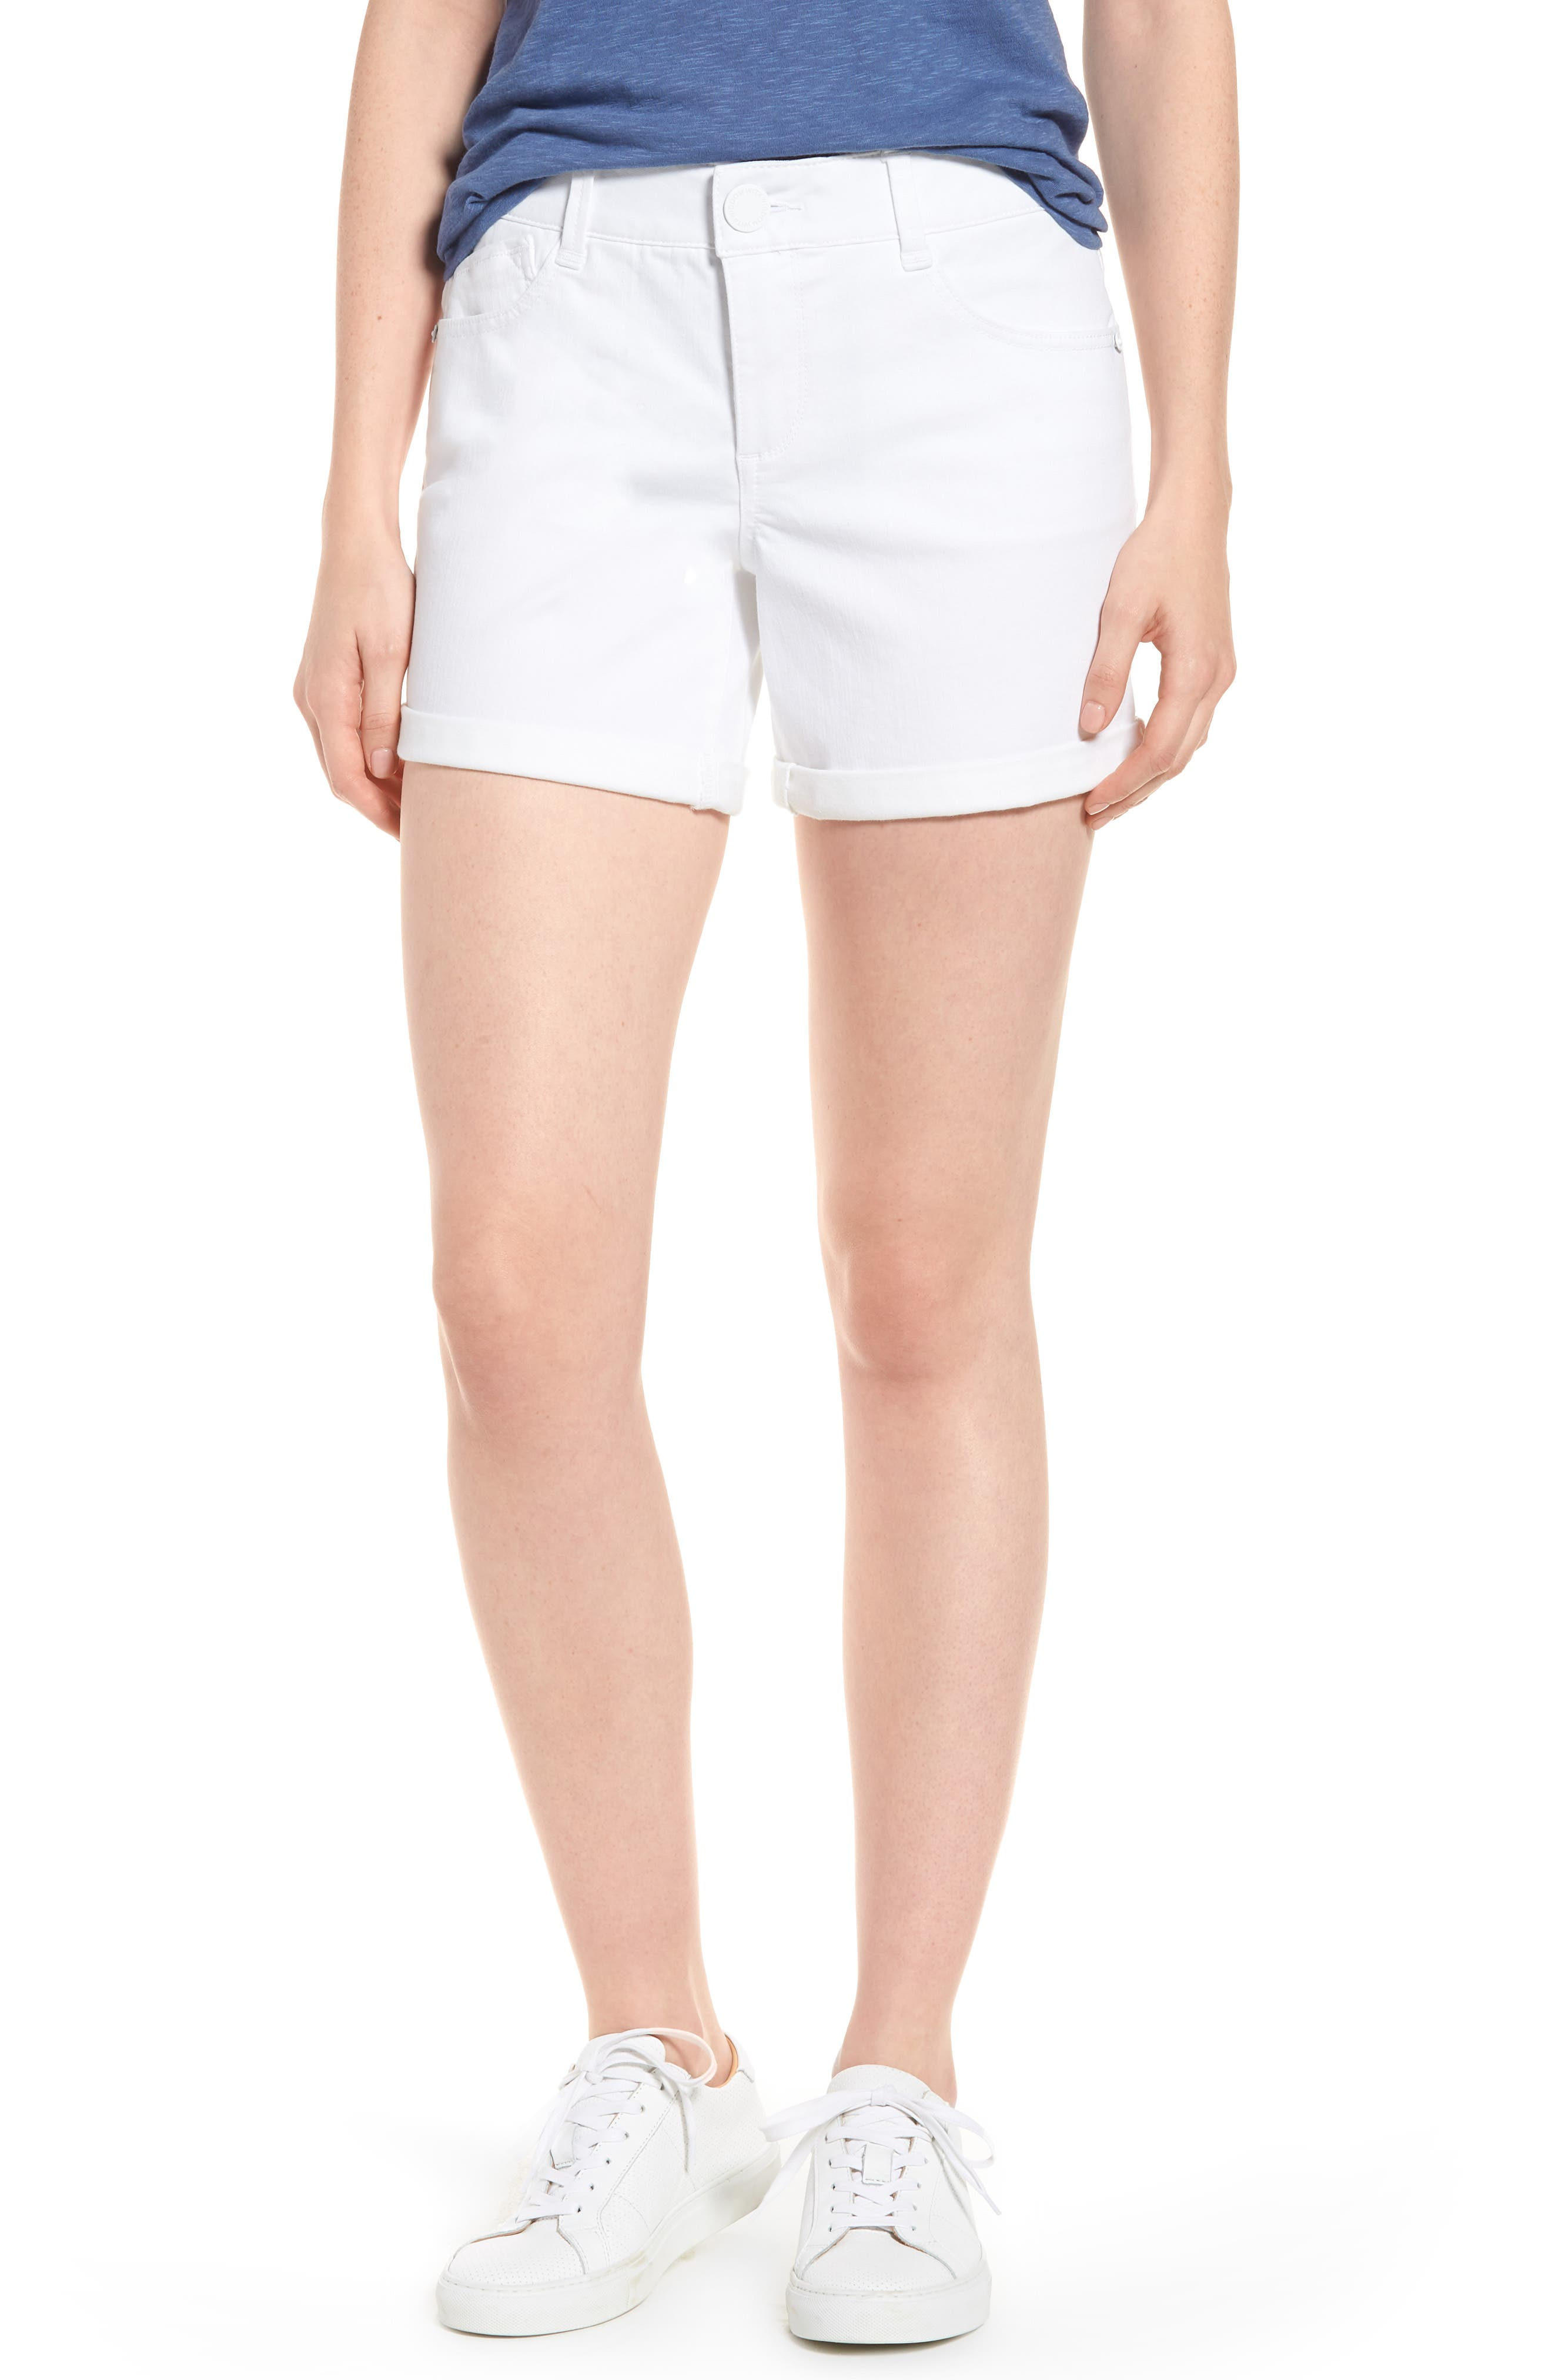 Ab-solution Cuffed White Shorts,                             Main thumbnail 1, color,                             Optic White